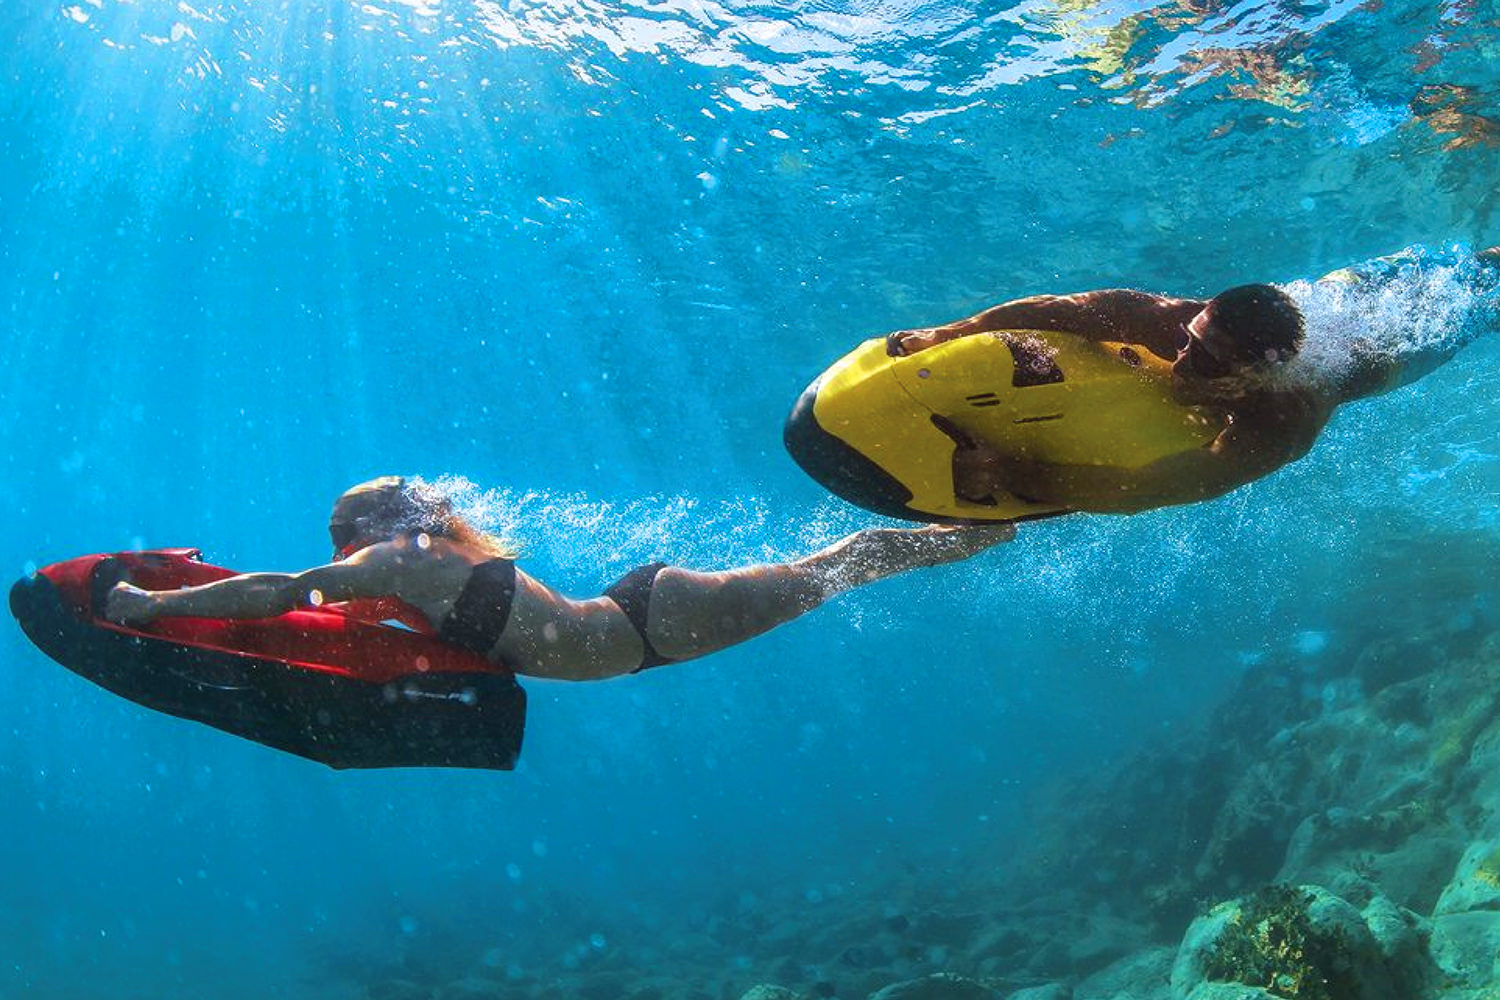 Seabob - ALL DAY USE FOR UNDERWATER FUN from $400